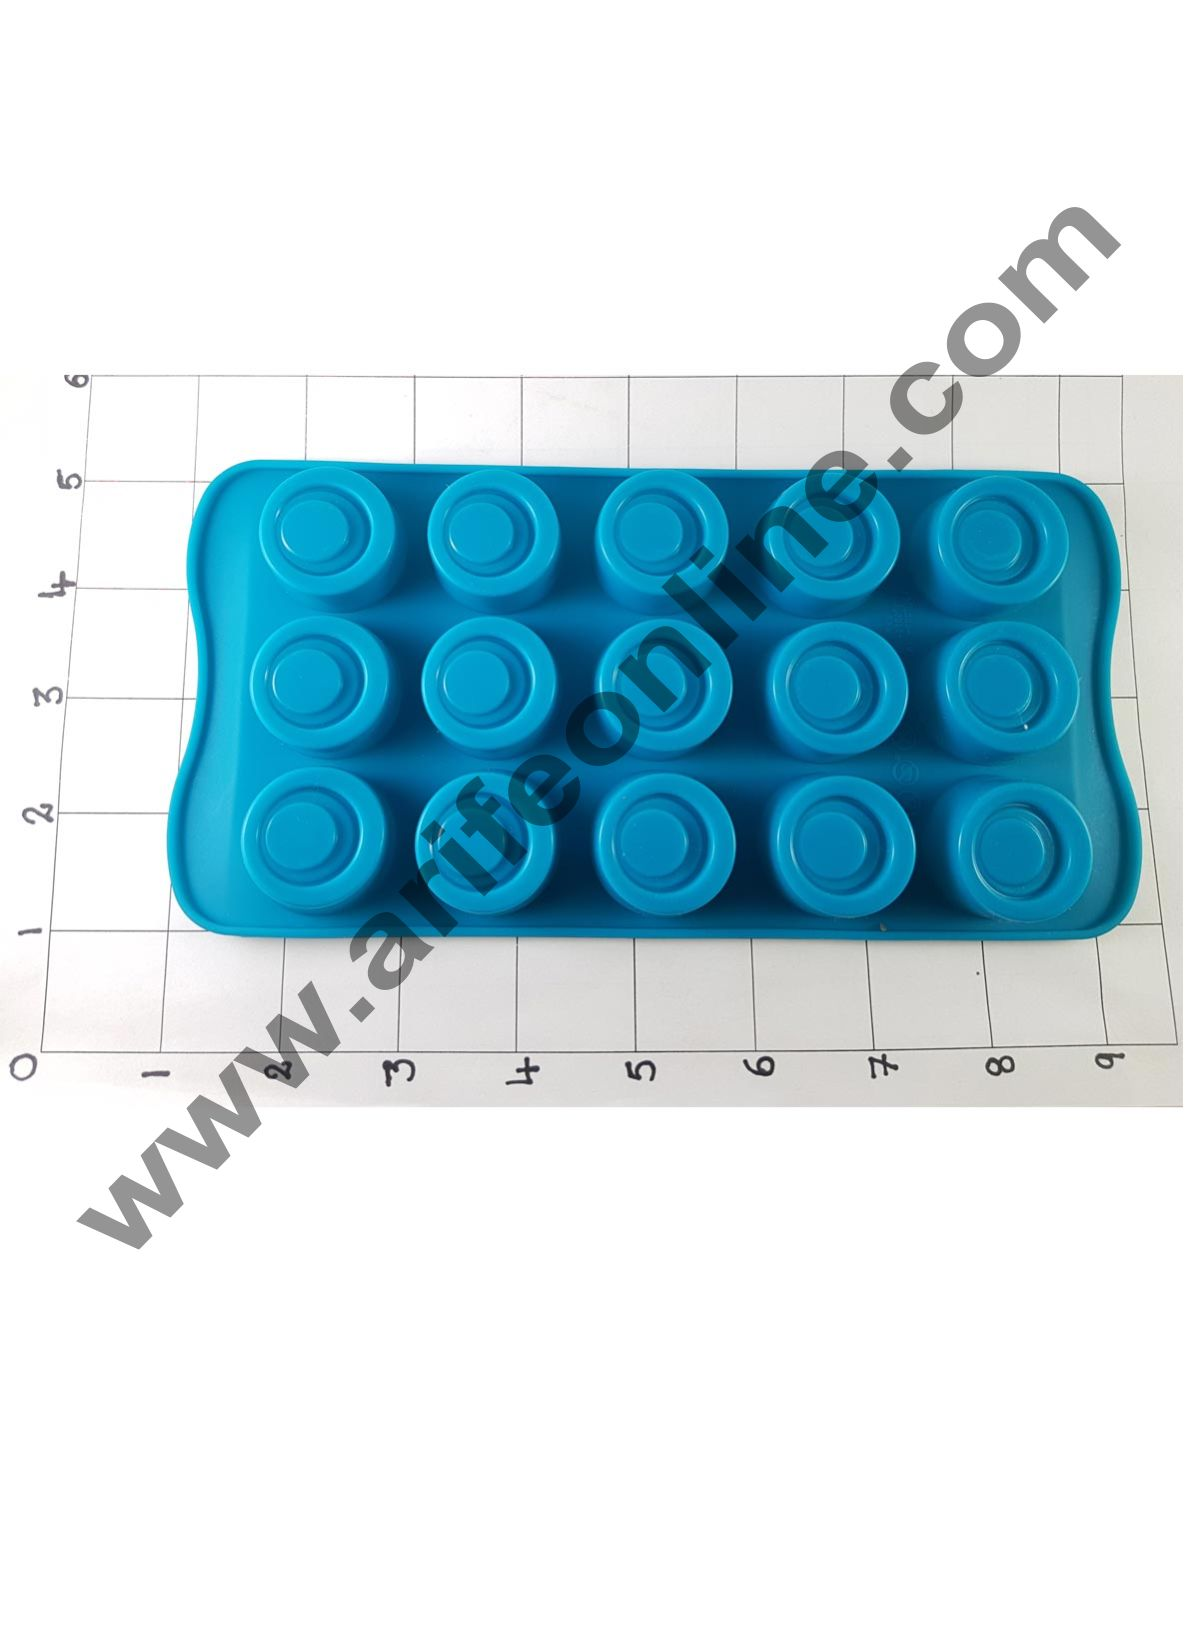 Cake Decor Silicon 15 Cavity Circle Design Brown Chocolate Mould, Ice Mould, Chocolate Decorating Mould